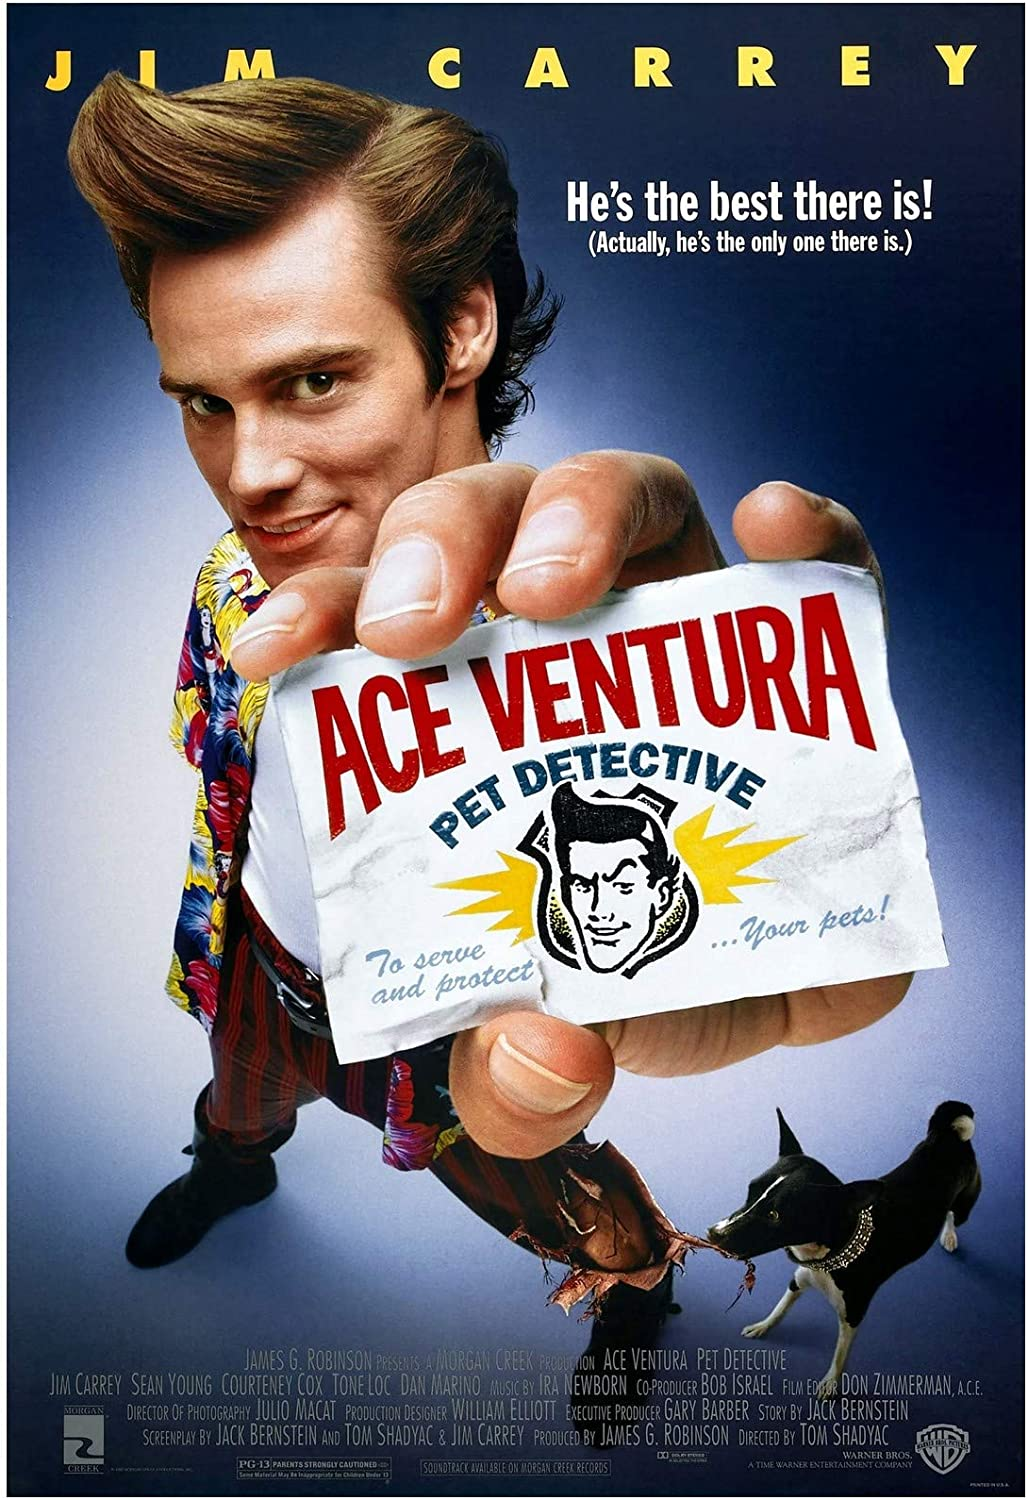 Ace Ventura Pet Detective Movie Poster 24 x 36 Inches Full Sized Print Unframed Ready for Display